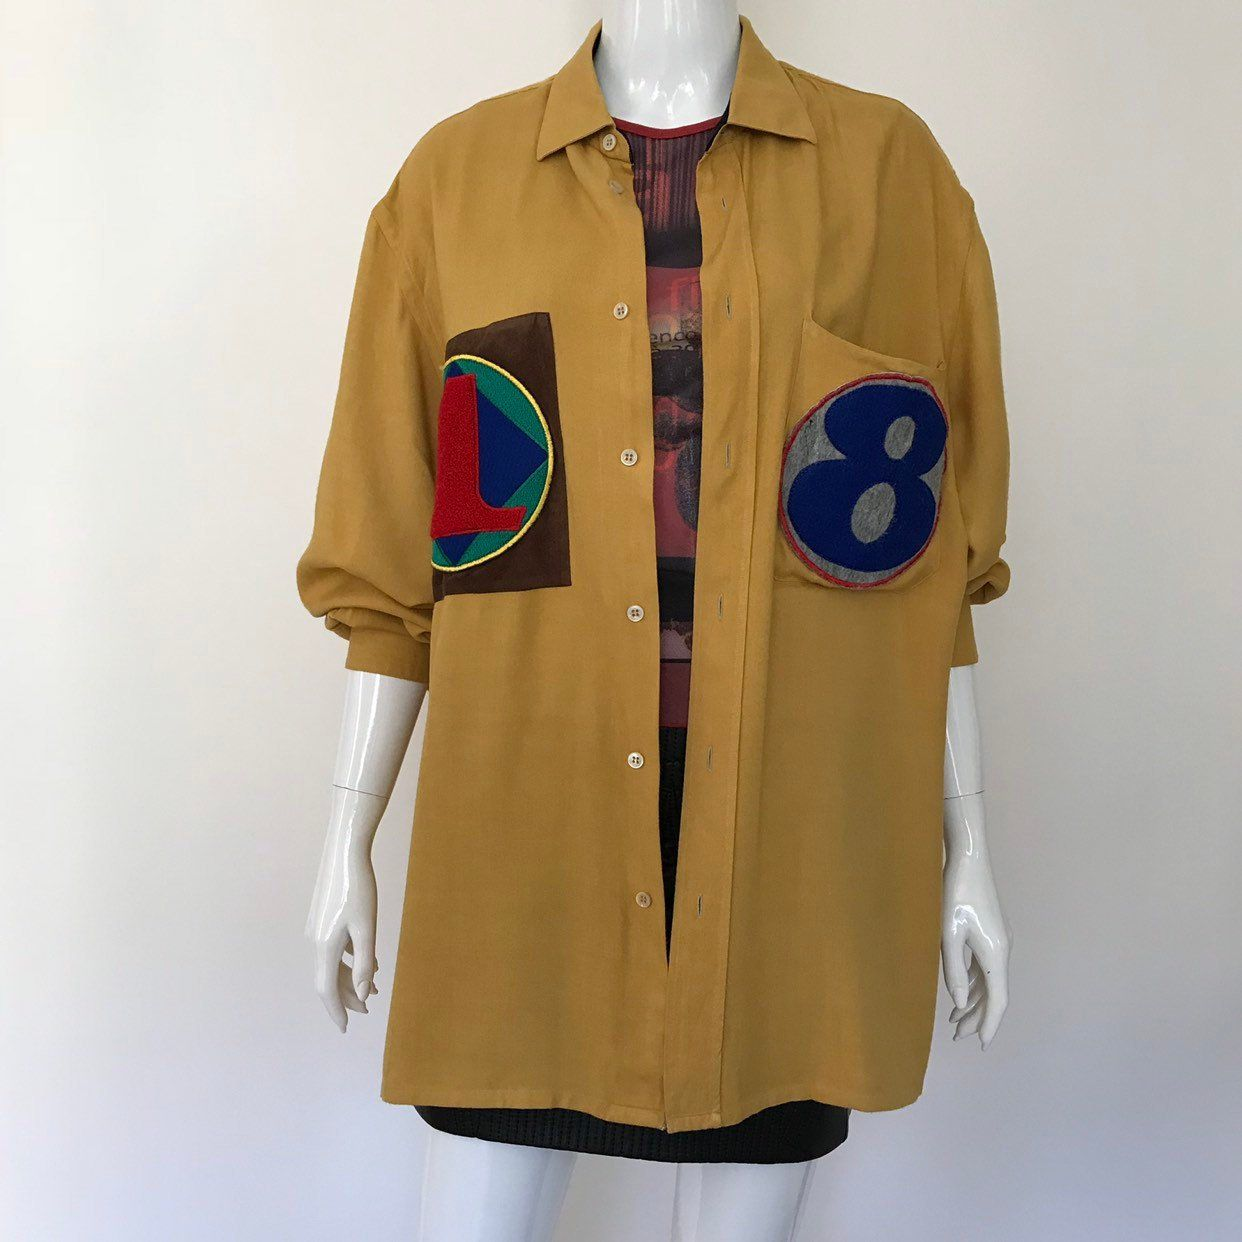 d2f82957792342 RARE   Gianfranco Ferre   90s designer shirt   shirt with patch   mustard  shirt   by LOFTOWN on Etsy